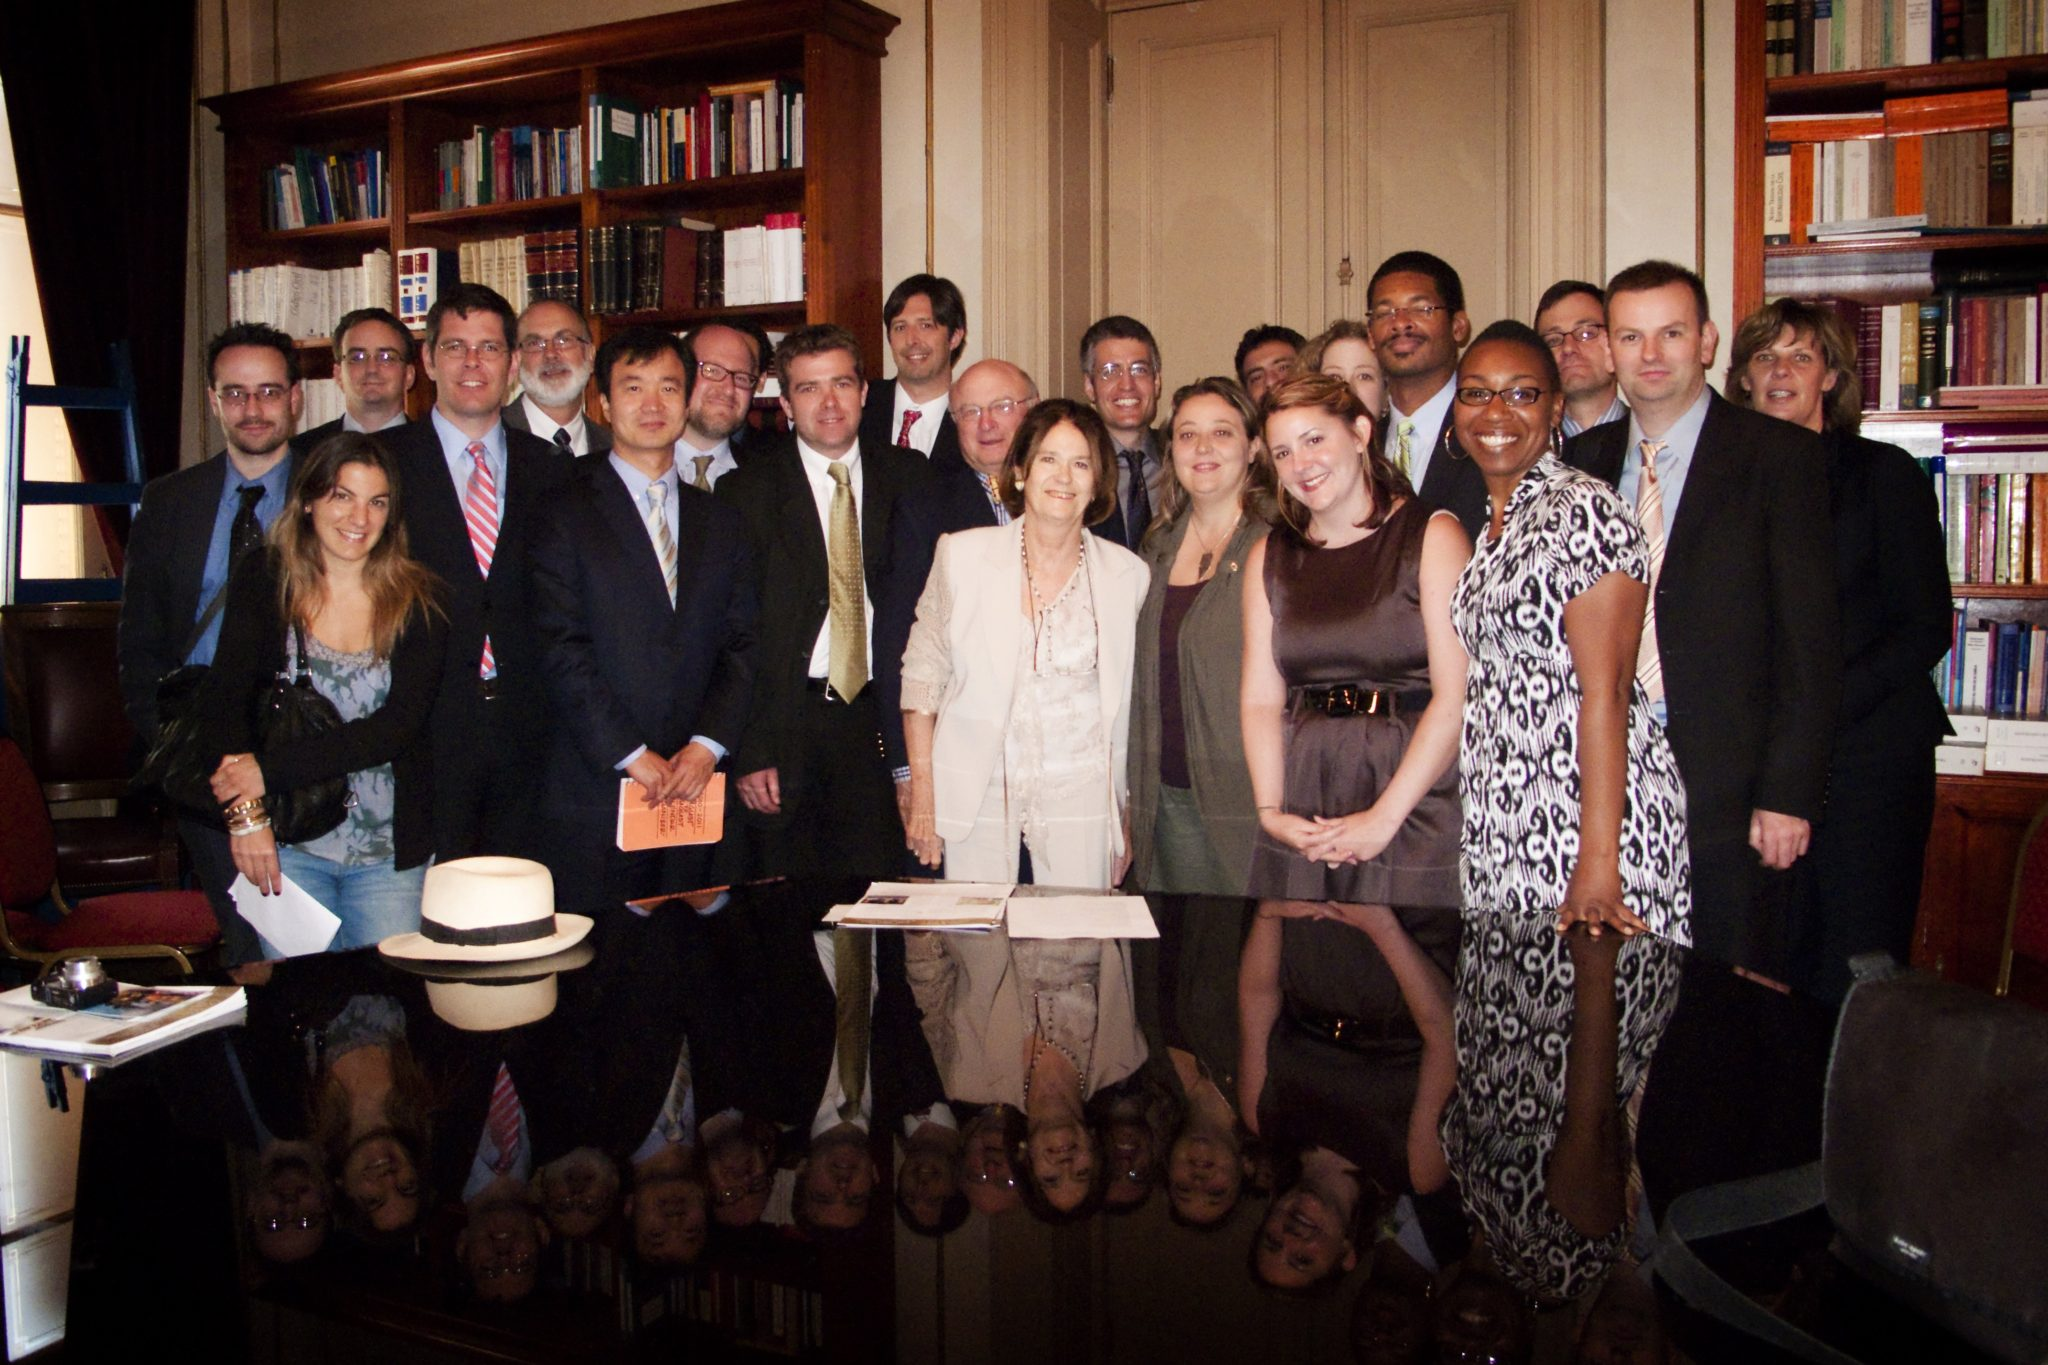 Knight-Wallace Fellows 2011